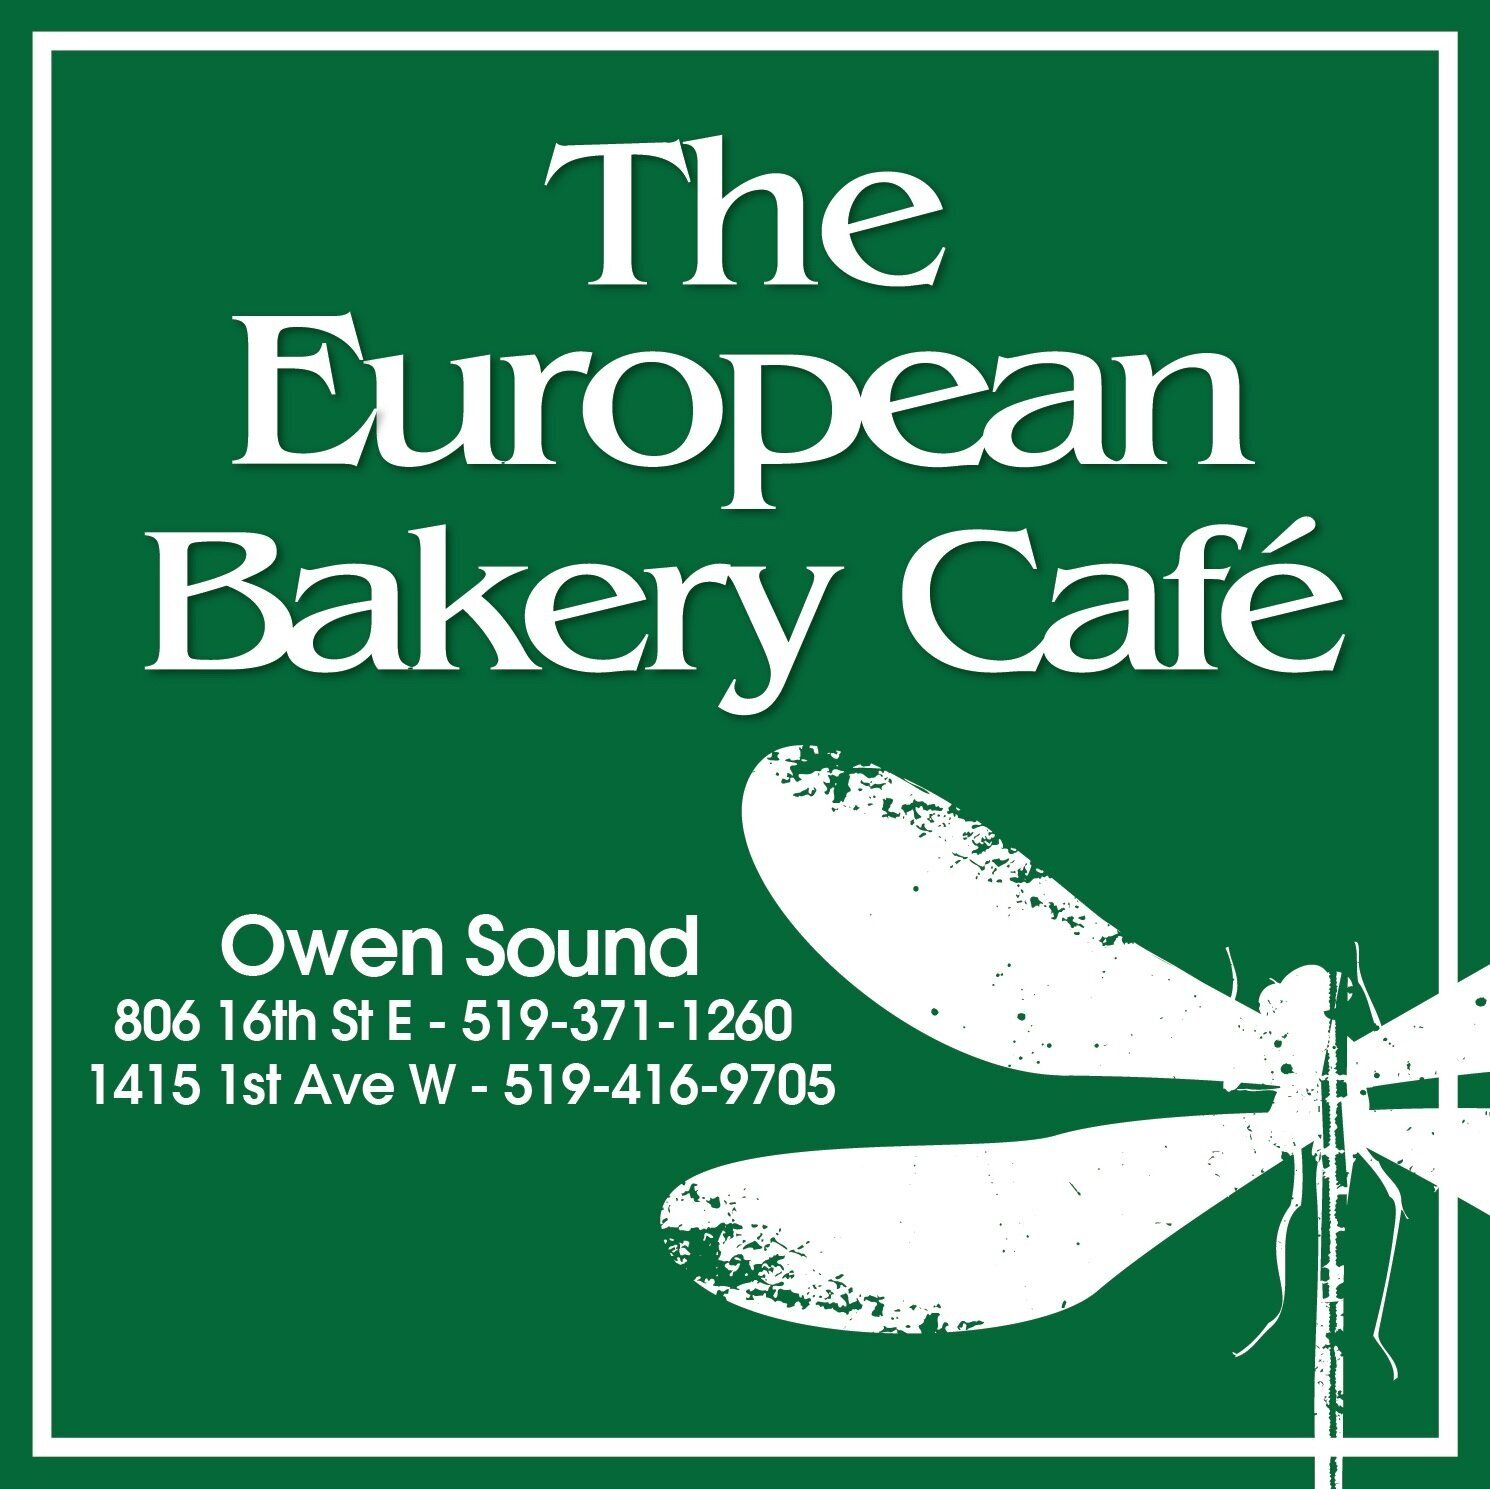 The European Bakery